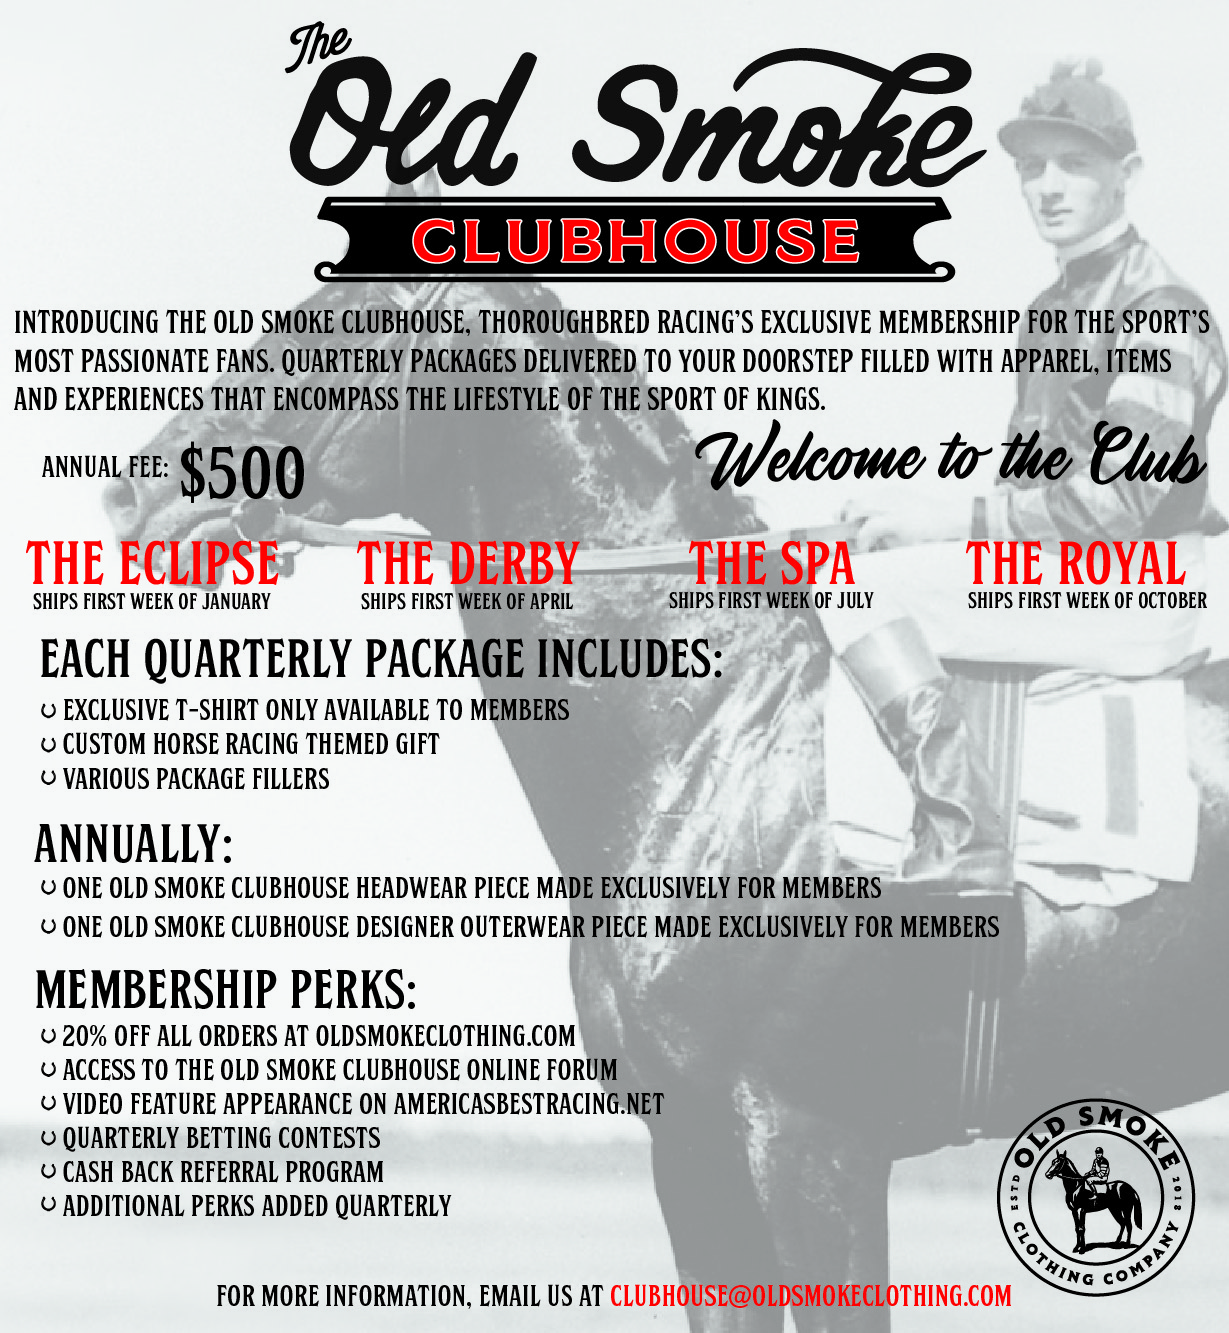 the-old-smoke-clubhouse.jpg